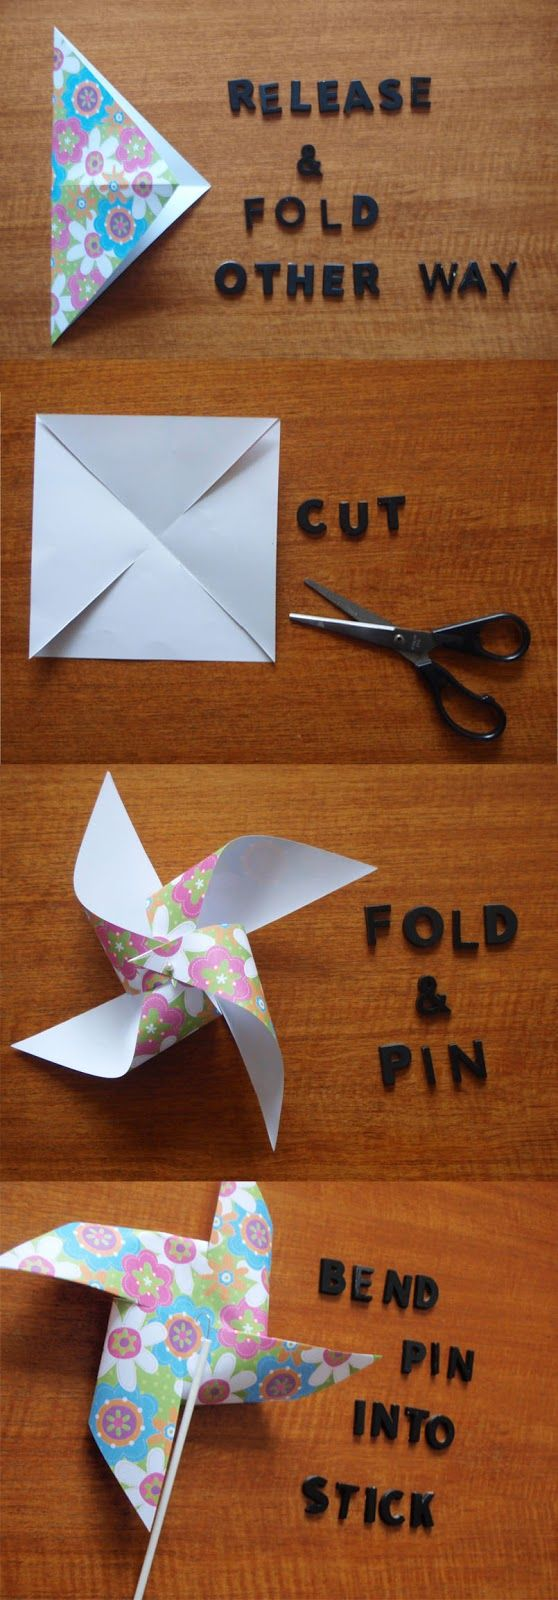 Dilly Foxtrot Investigates: NEW FEATURE.......DIY Party Decorations ...